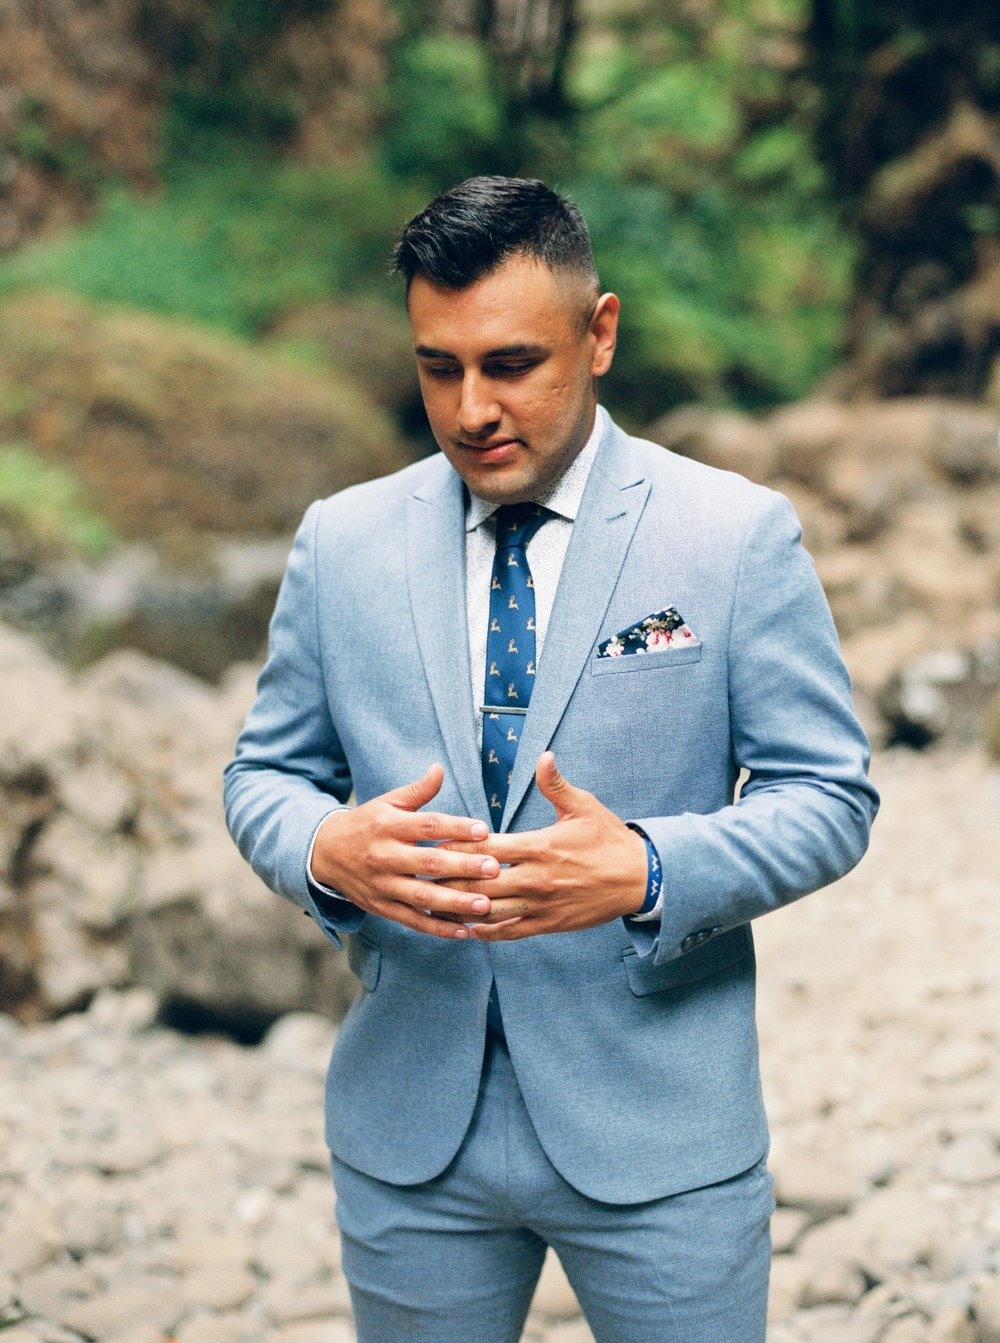 abiqua_falls_elopement_wedding_oregon_photographer_videographer_049.jpg